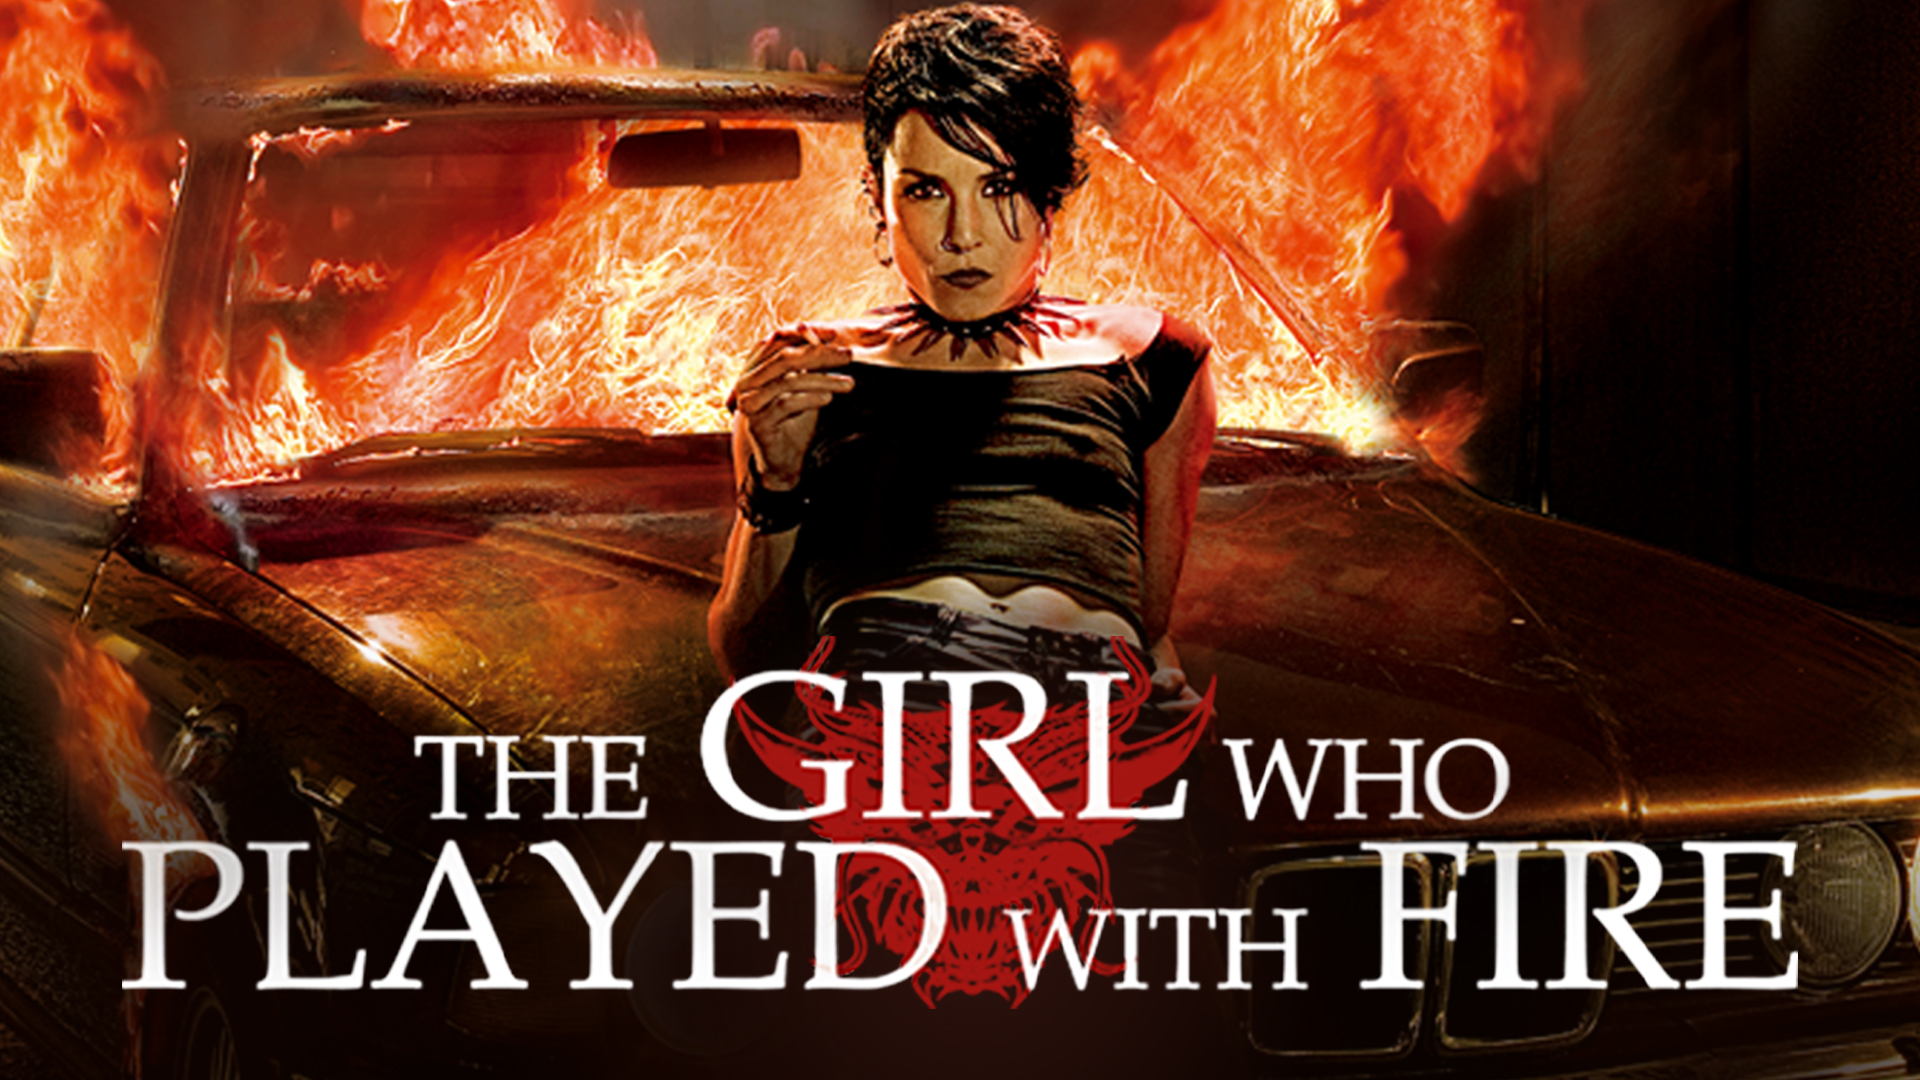 The Girl Who Played With Fire (English dubbed)